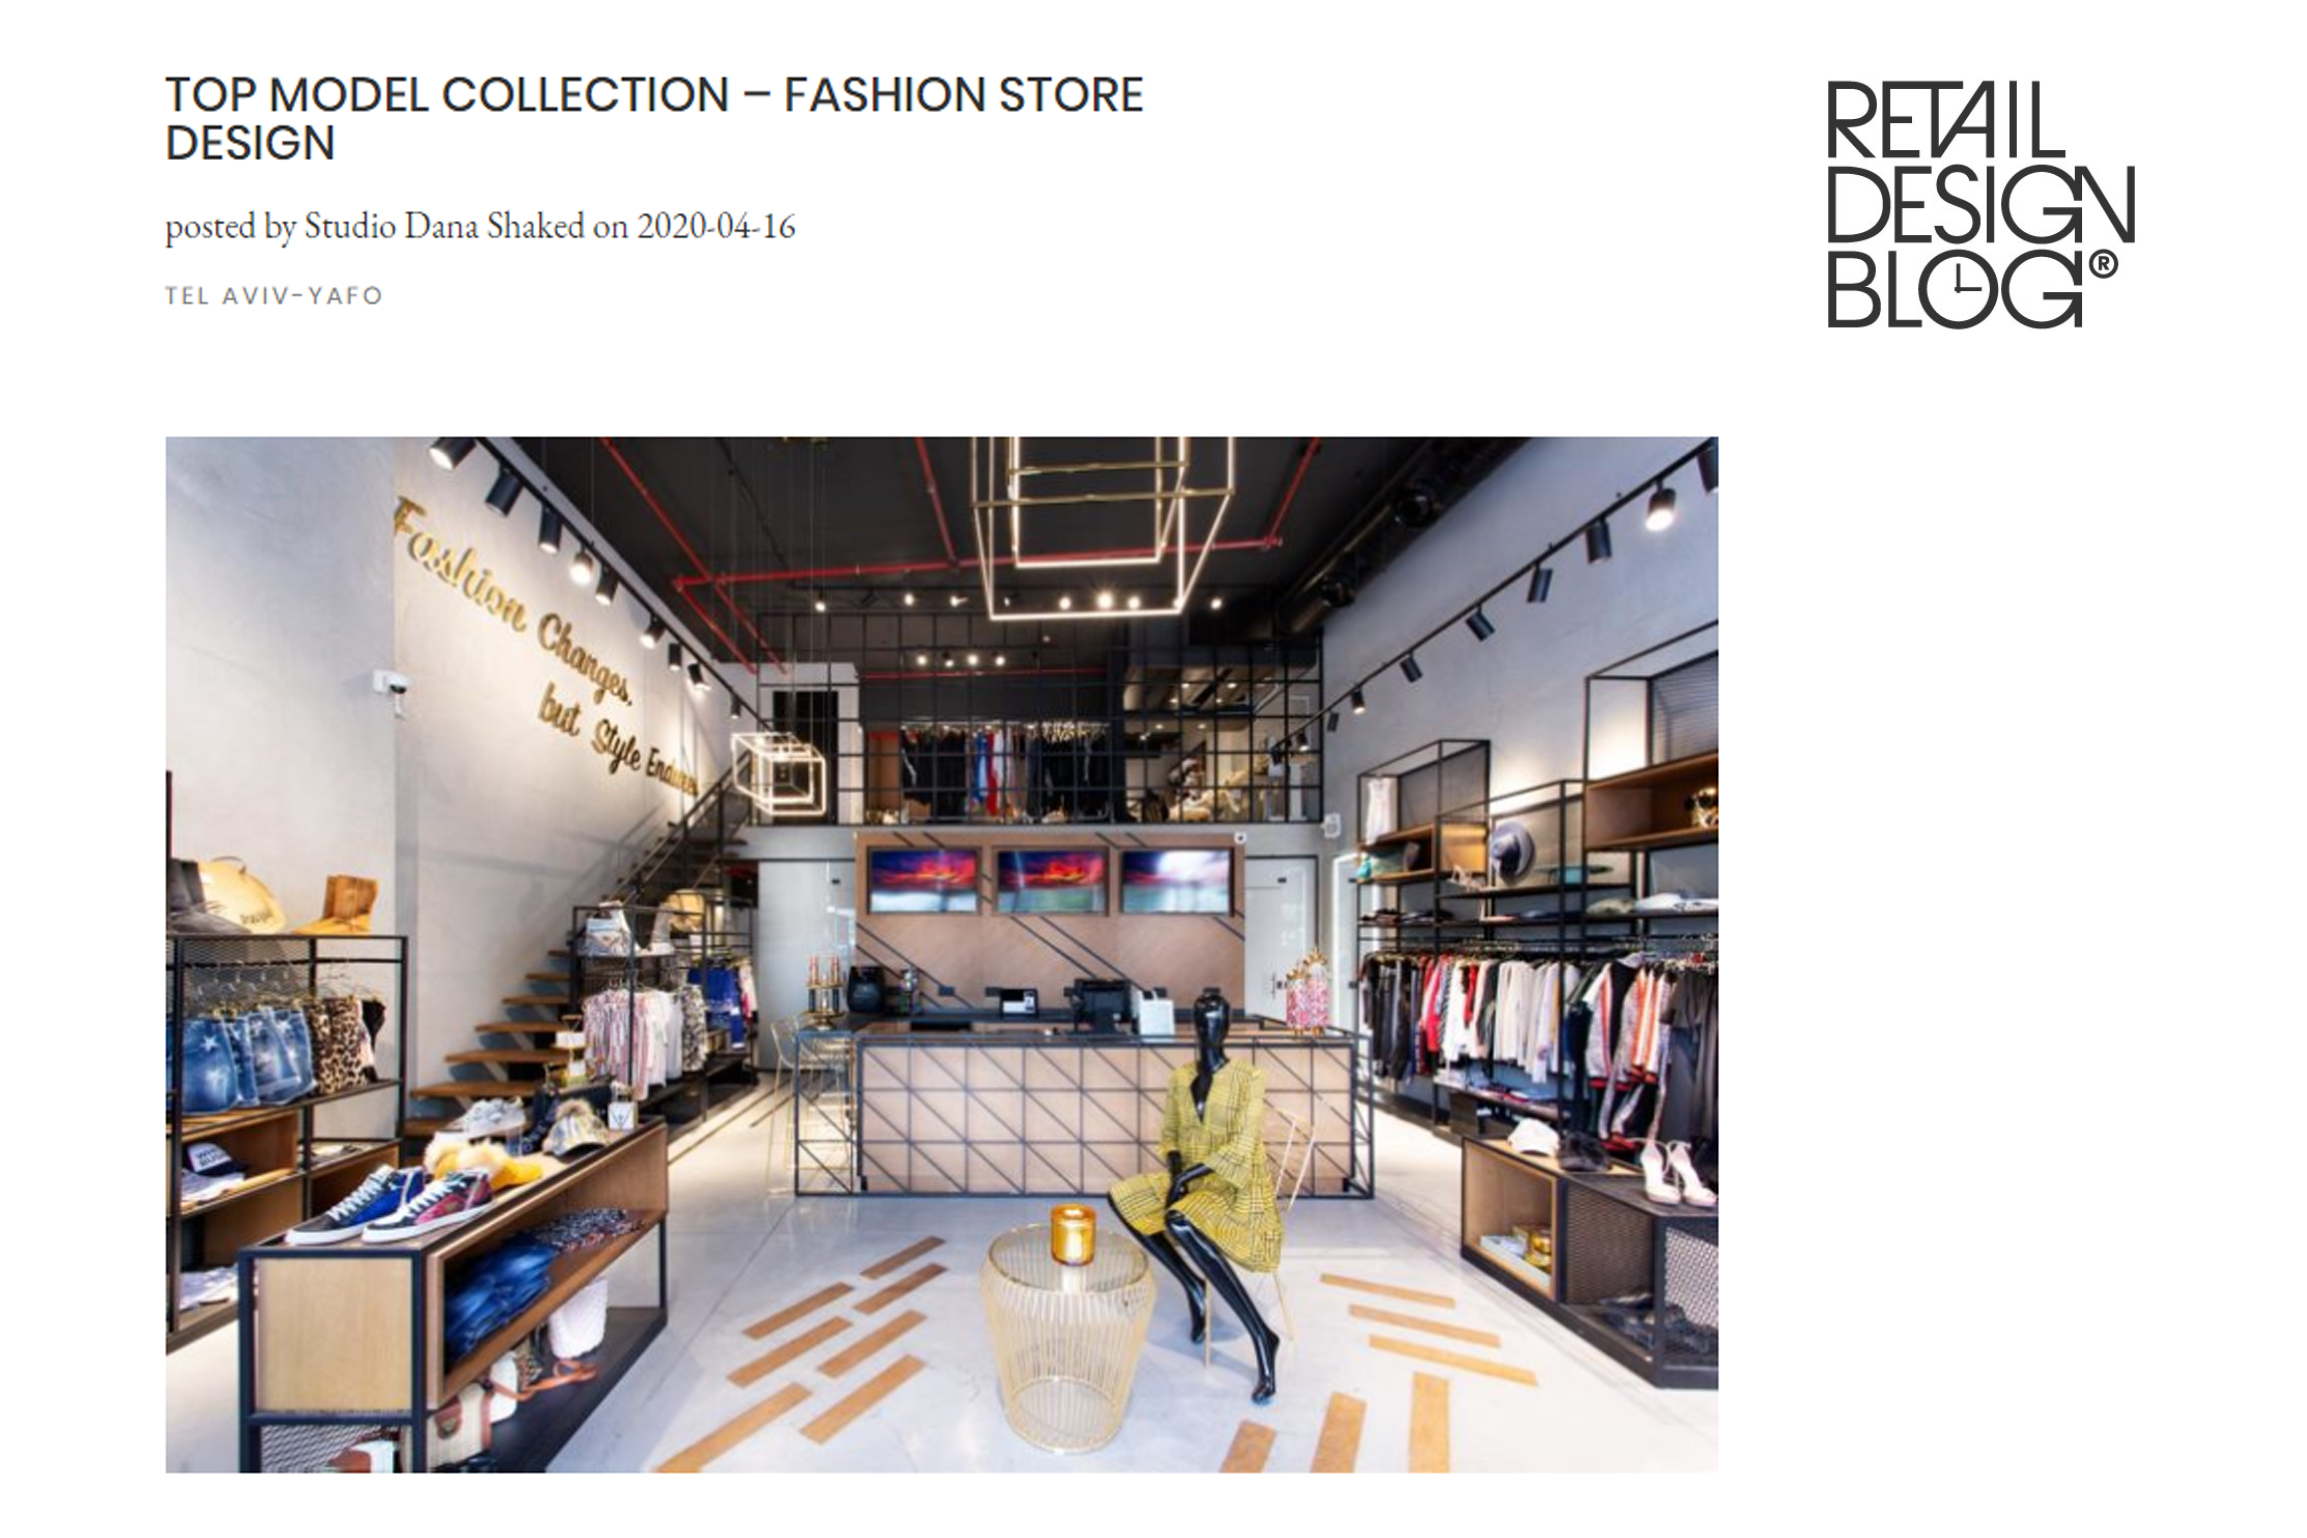 Top Model Collection – Retail Design Blog